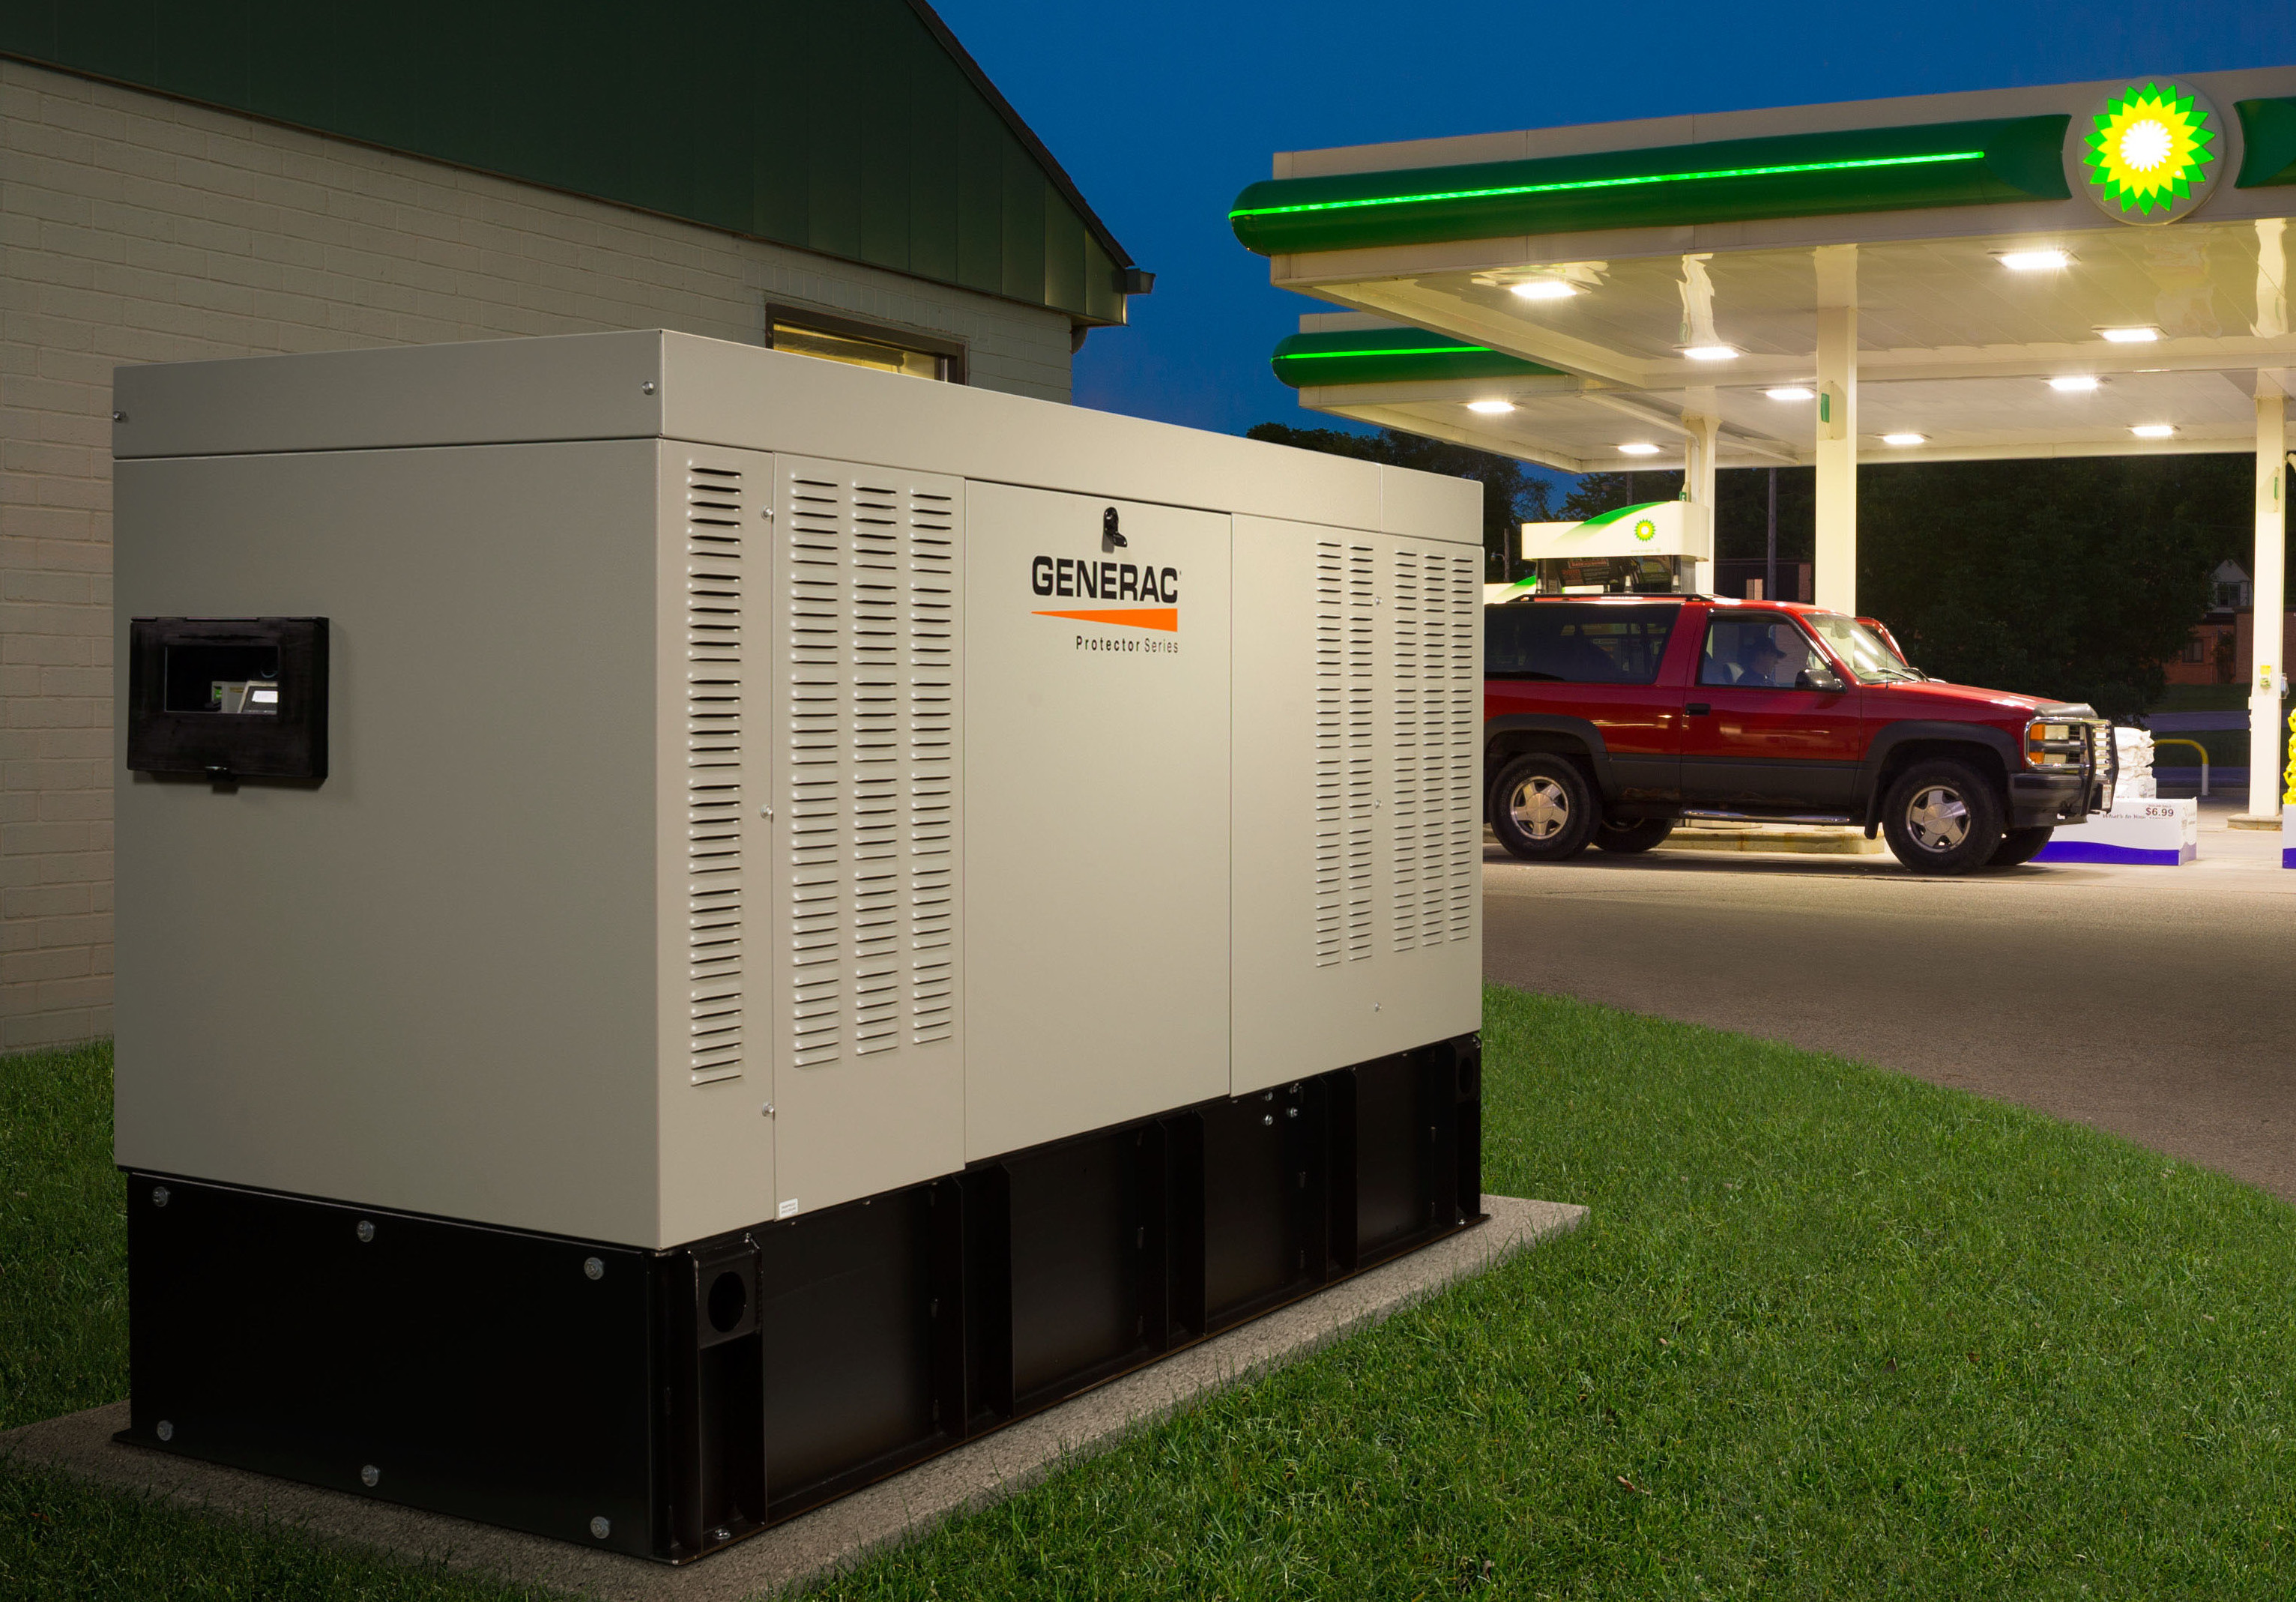 Protect your business from a power outage with Generac generators